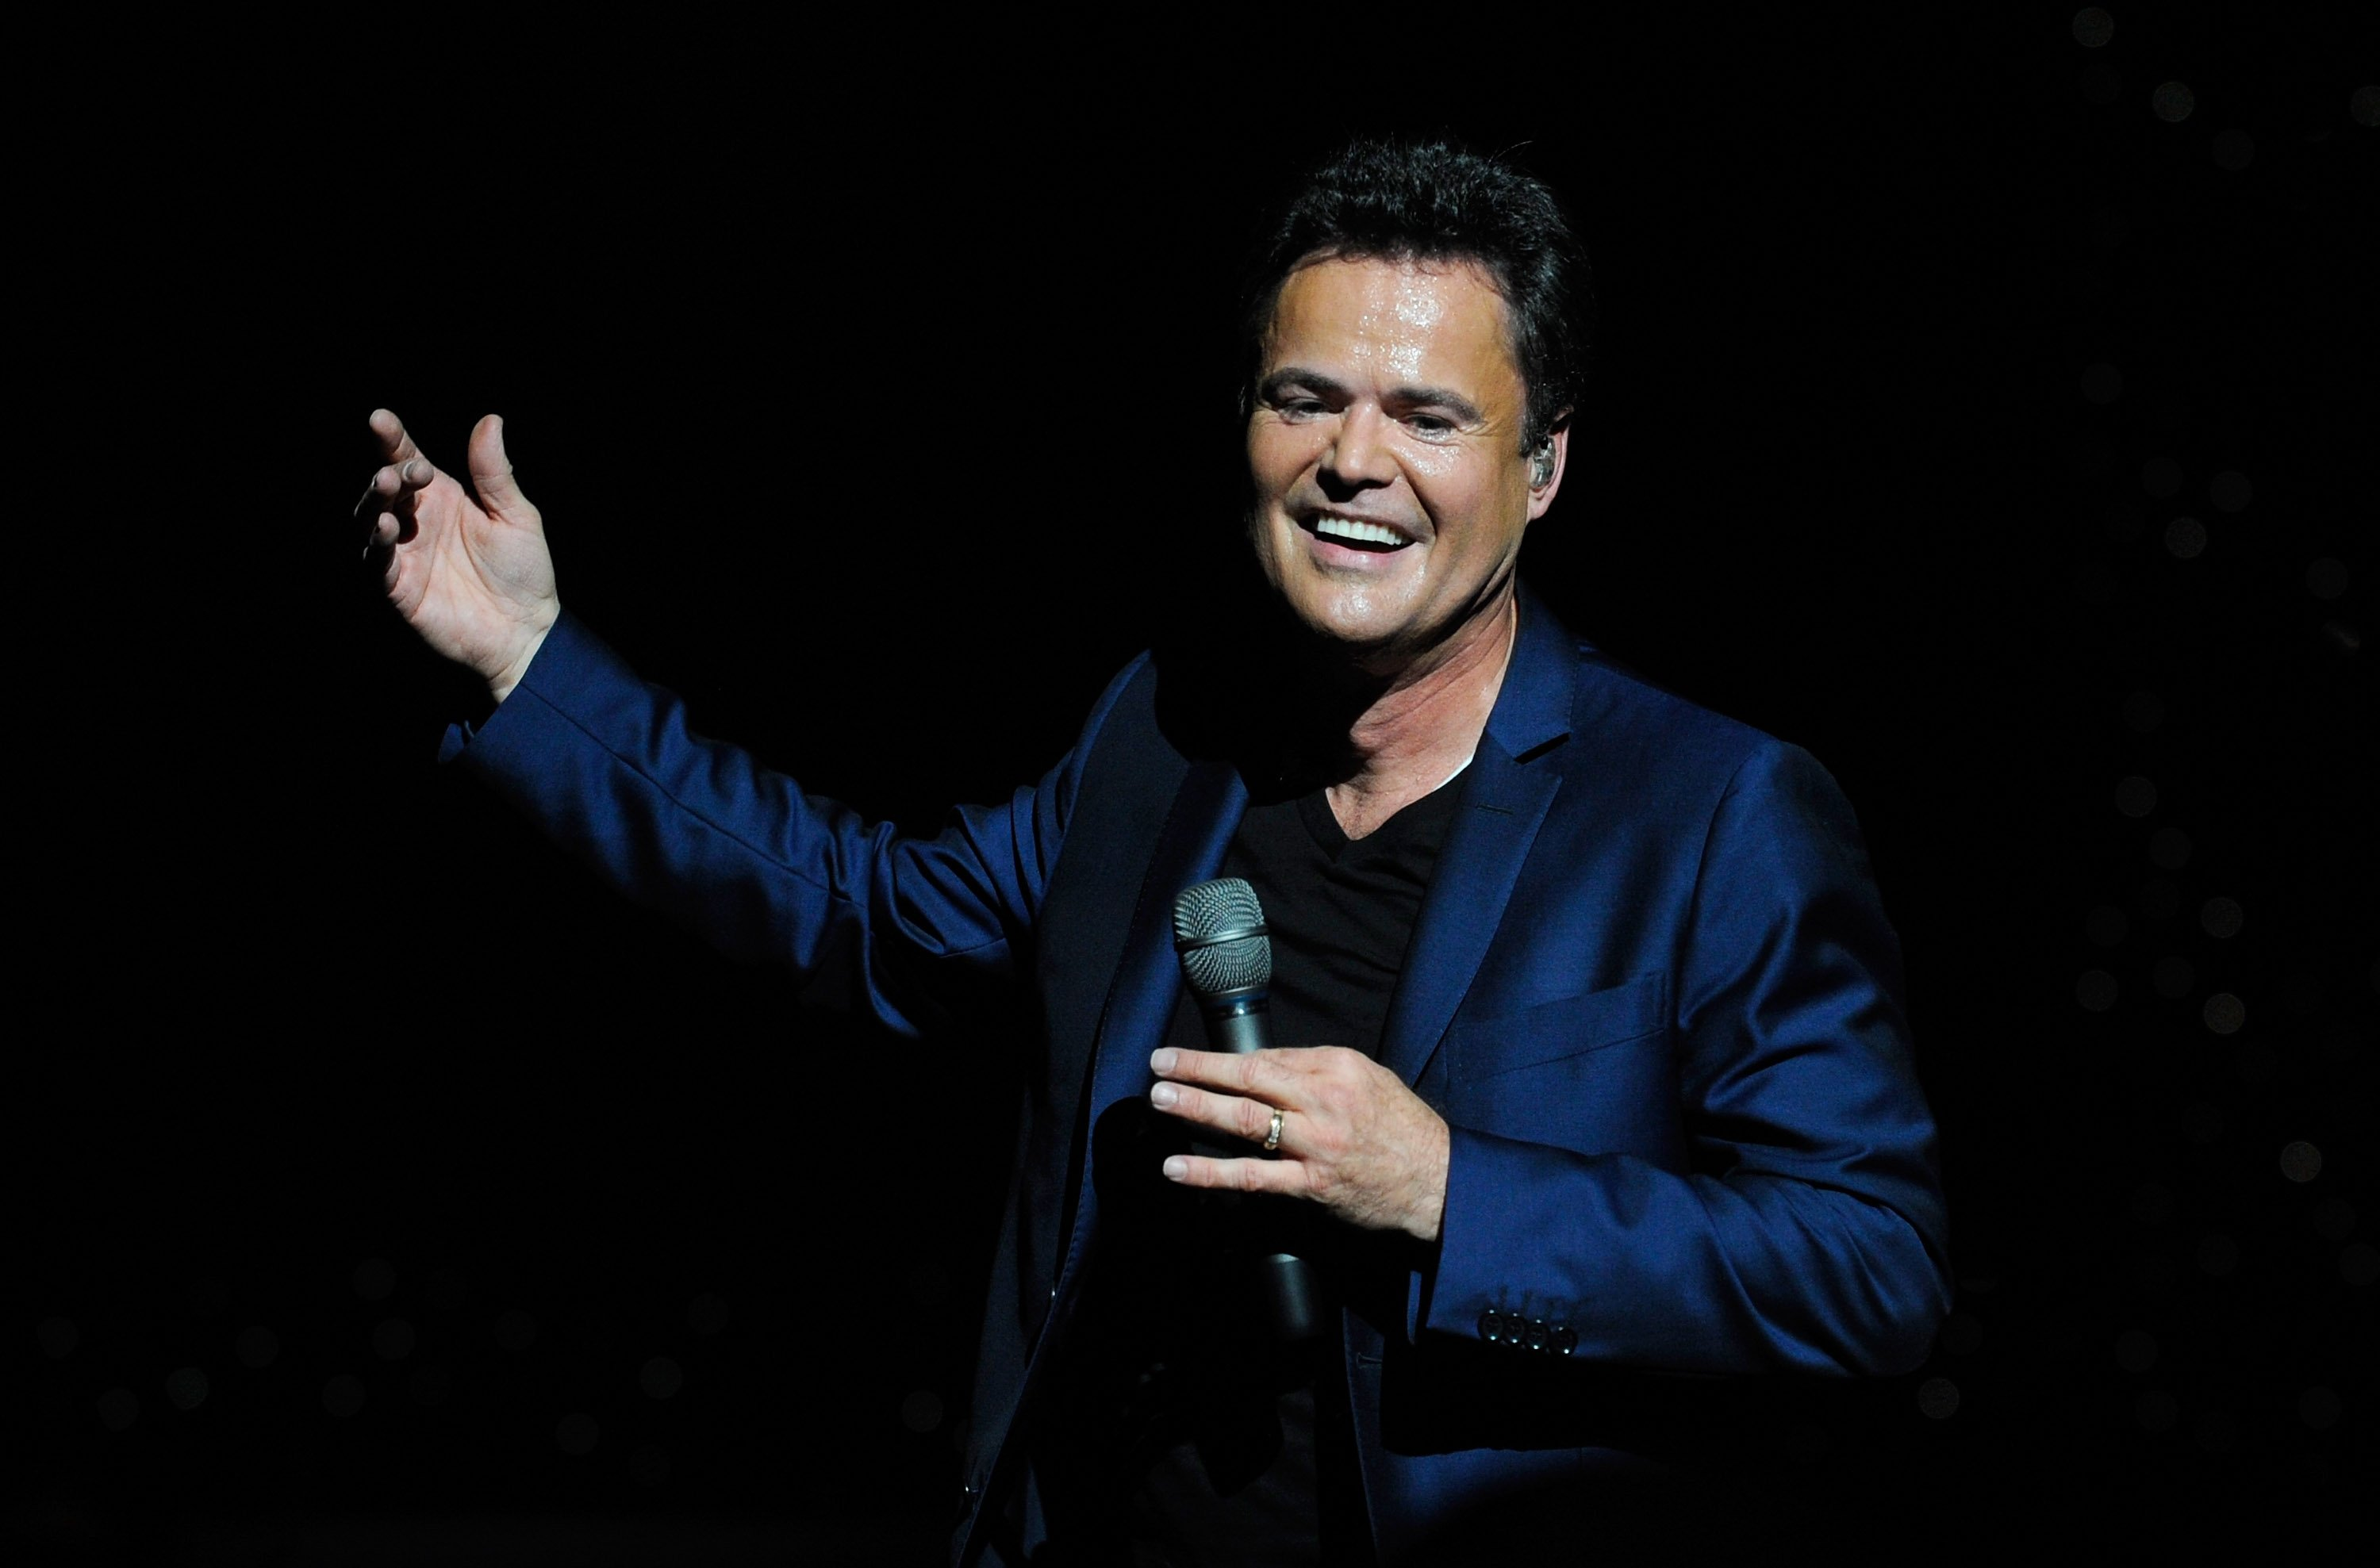 Donny Osmond during the Donny & Marie variety show at the Flamingo Las Vegas October 17, 2012  | Photo: GettyImages